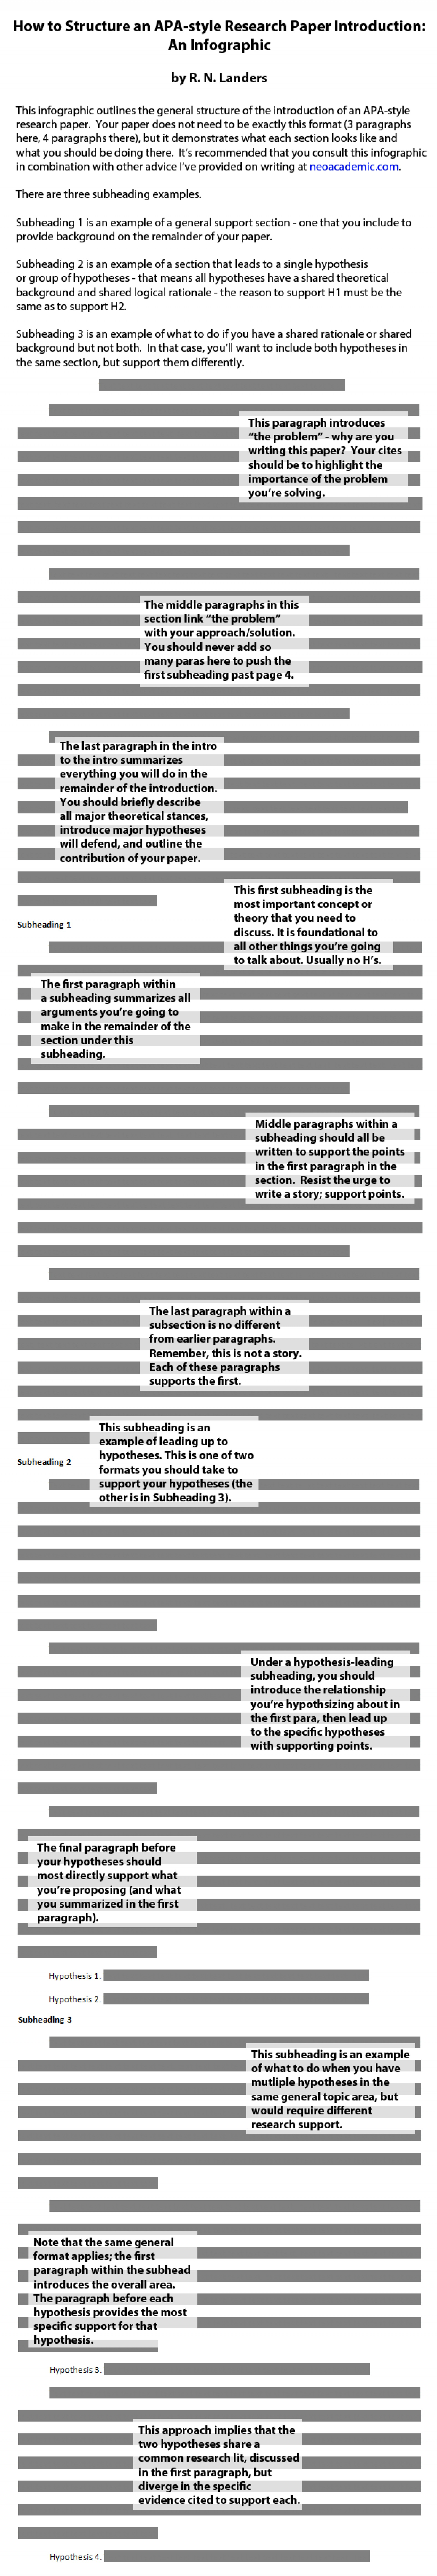 002 Intro Infographic2 Research Paper How To Write An Introduction For Fearsome A Apa 1920